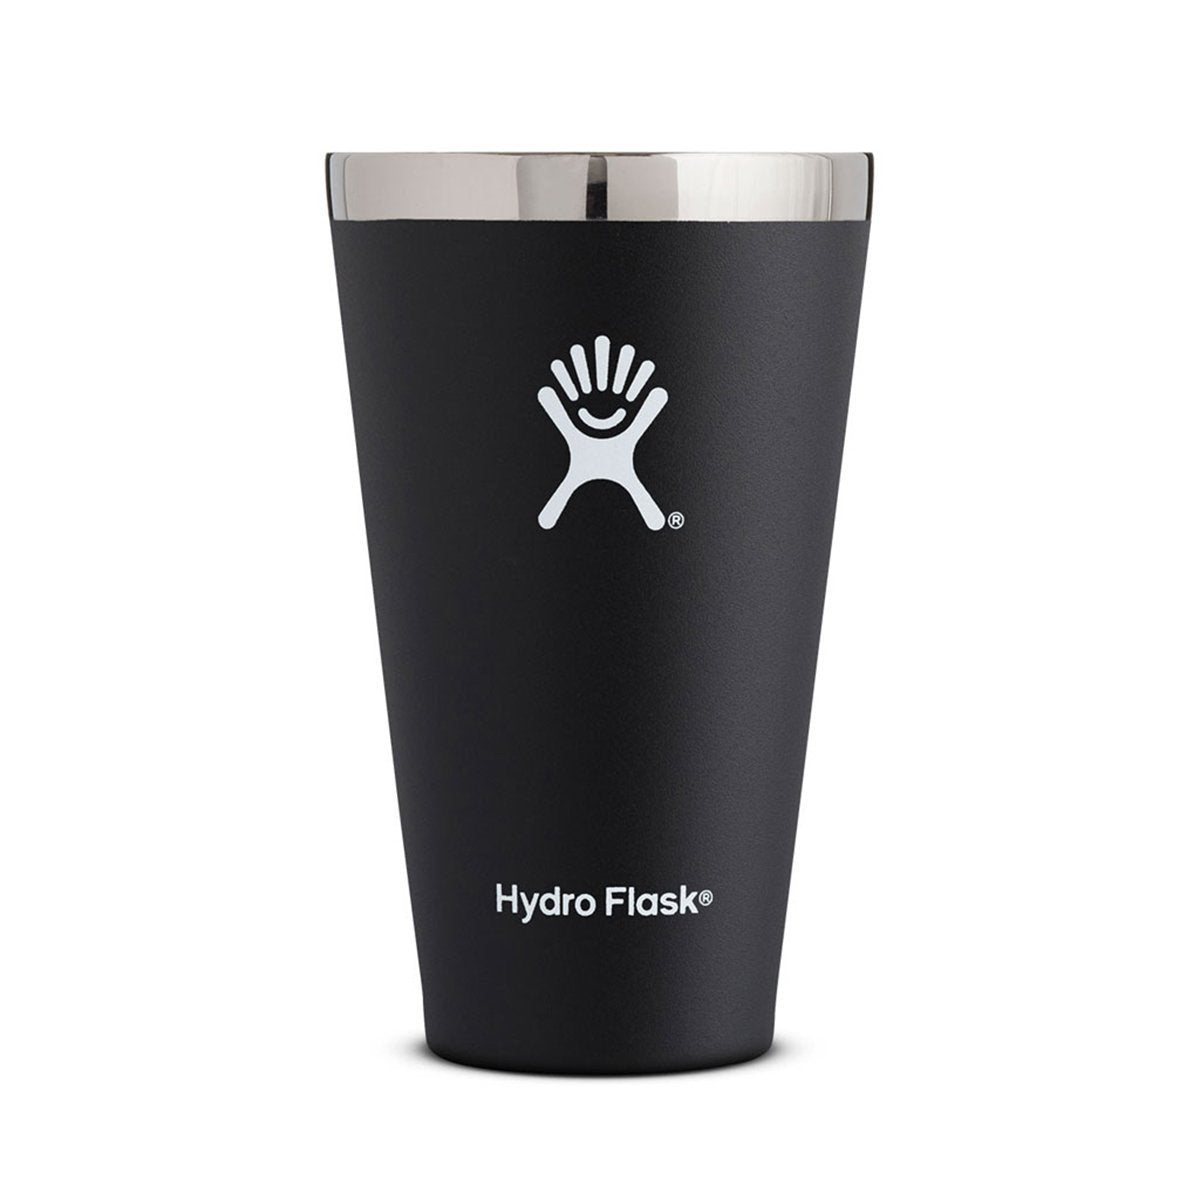 Hydro Flask | 16 oz Tumbler | Stainless Steel Pint Glass | Black